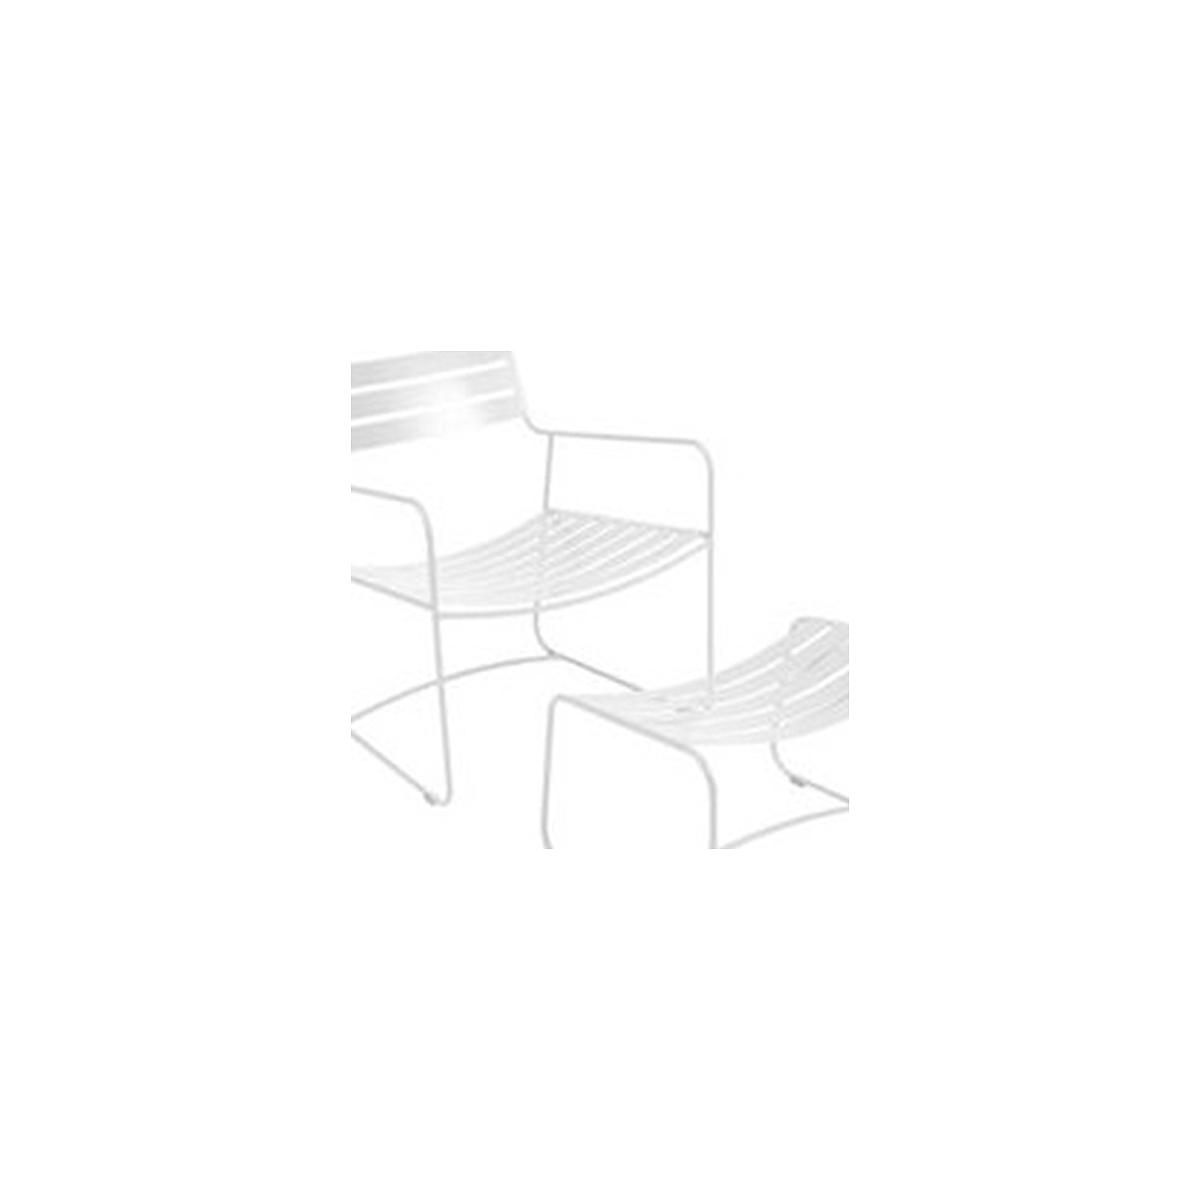 SURPRISING by Fermob Fauteuil + repose pied Blanc cotton